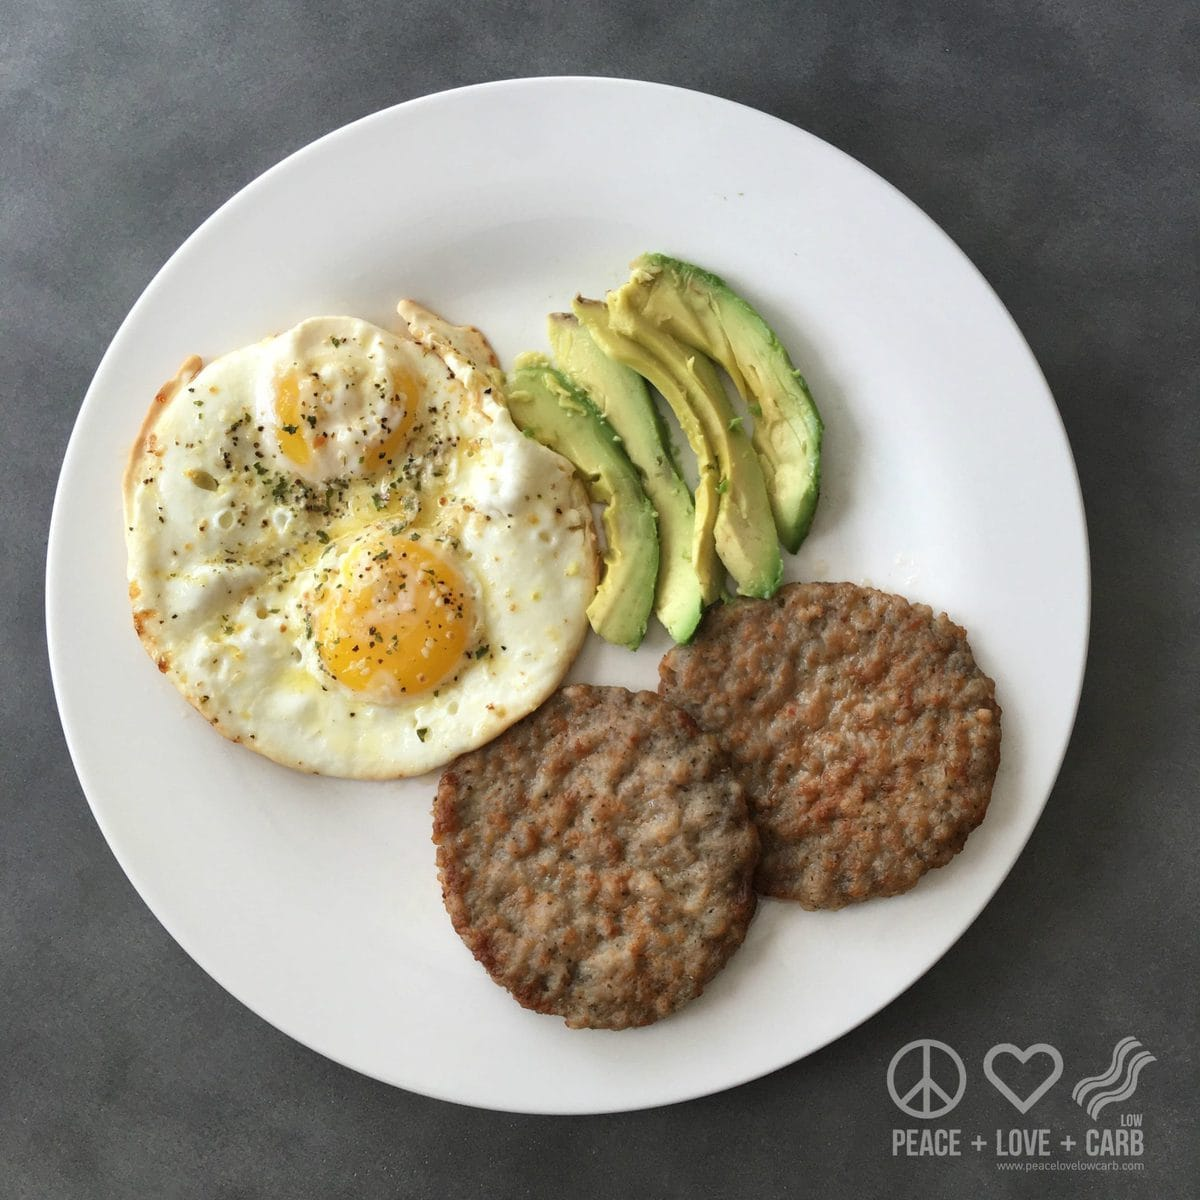 Sausage, Eggs, Avocado - Low Carb, High Fat | Peace Love and Low Carb